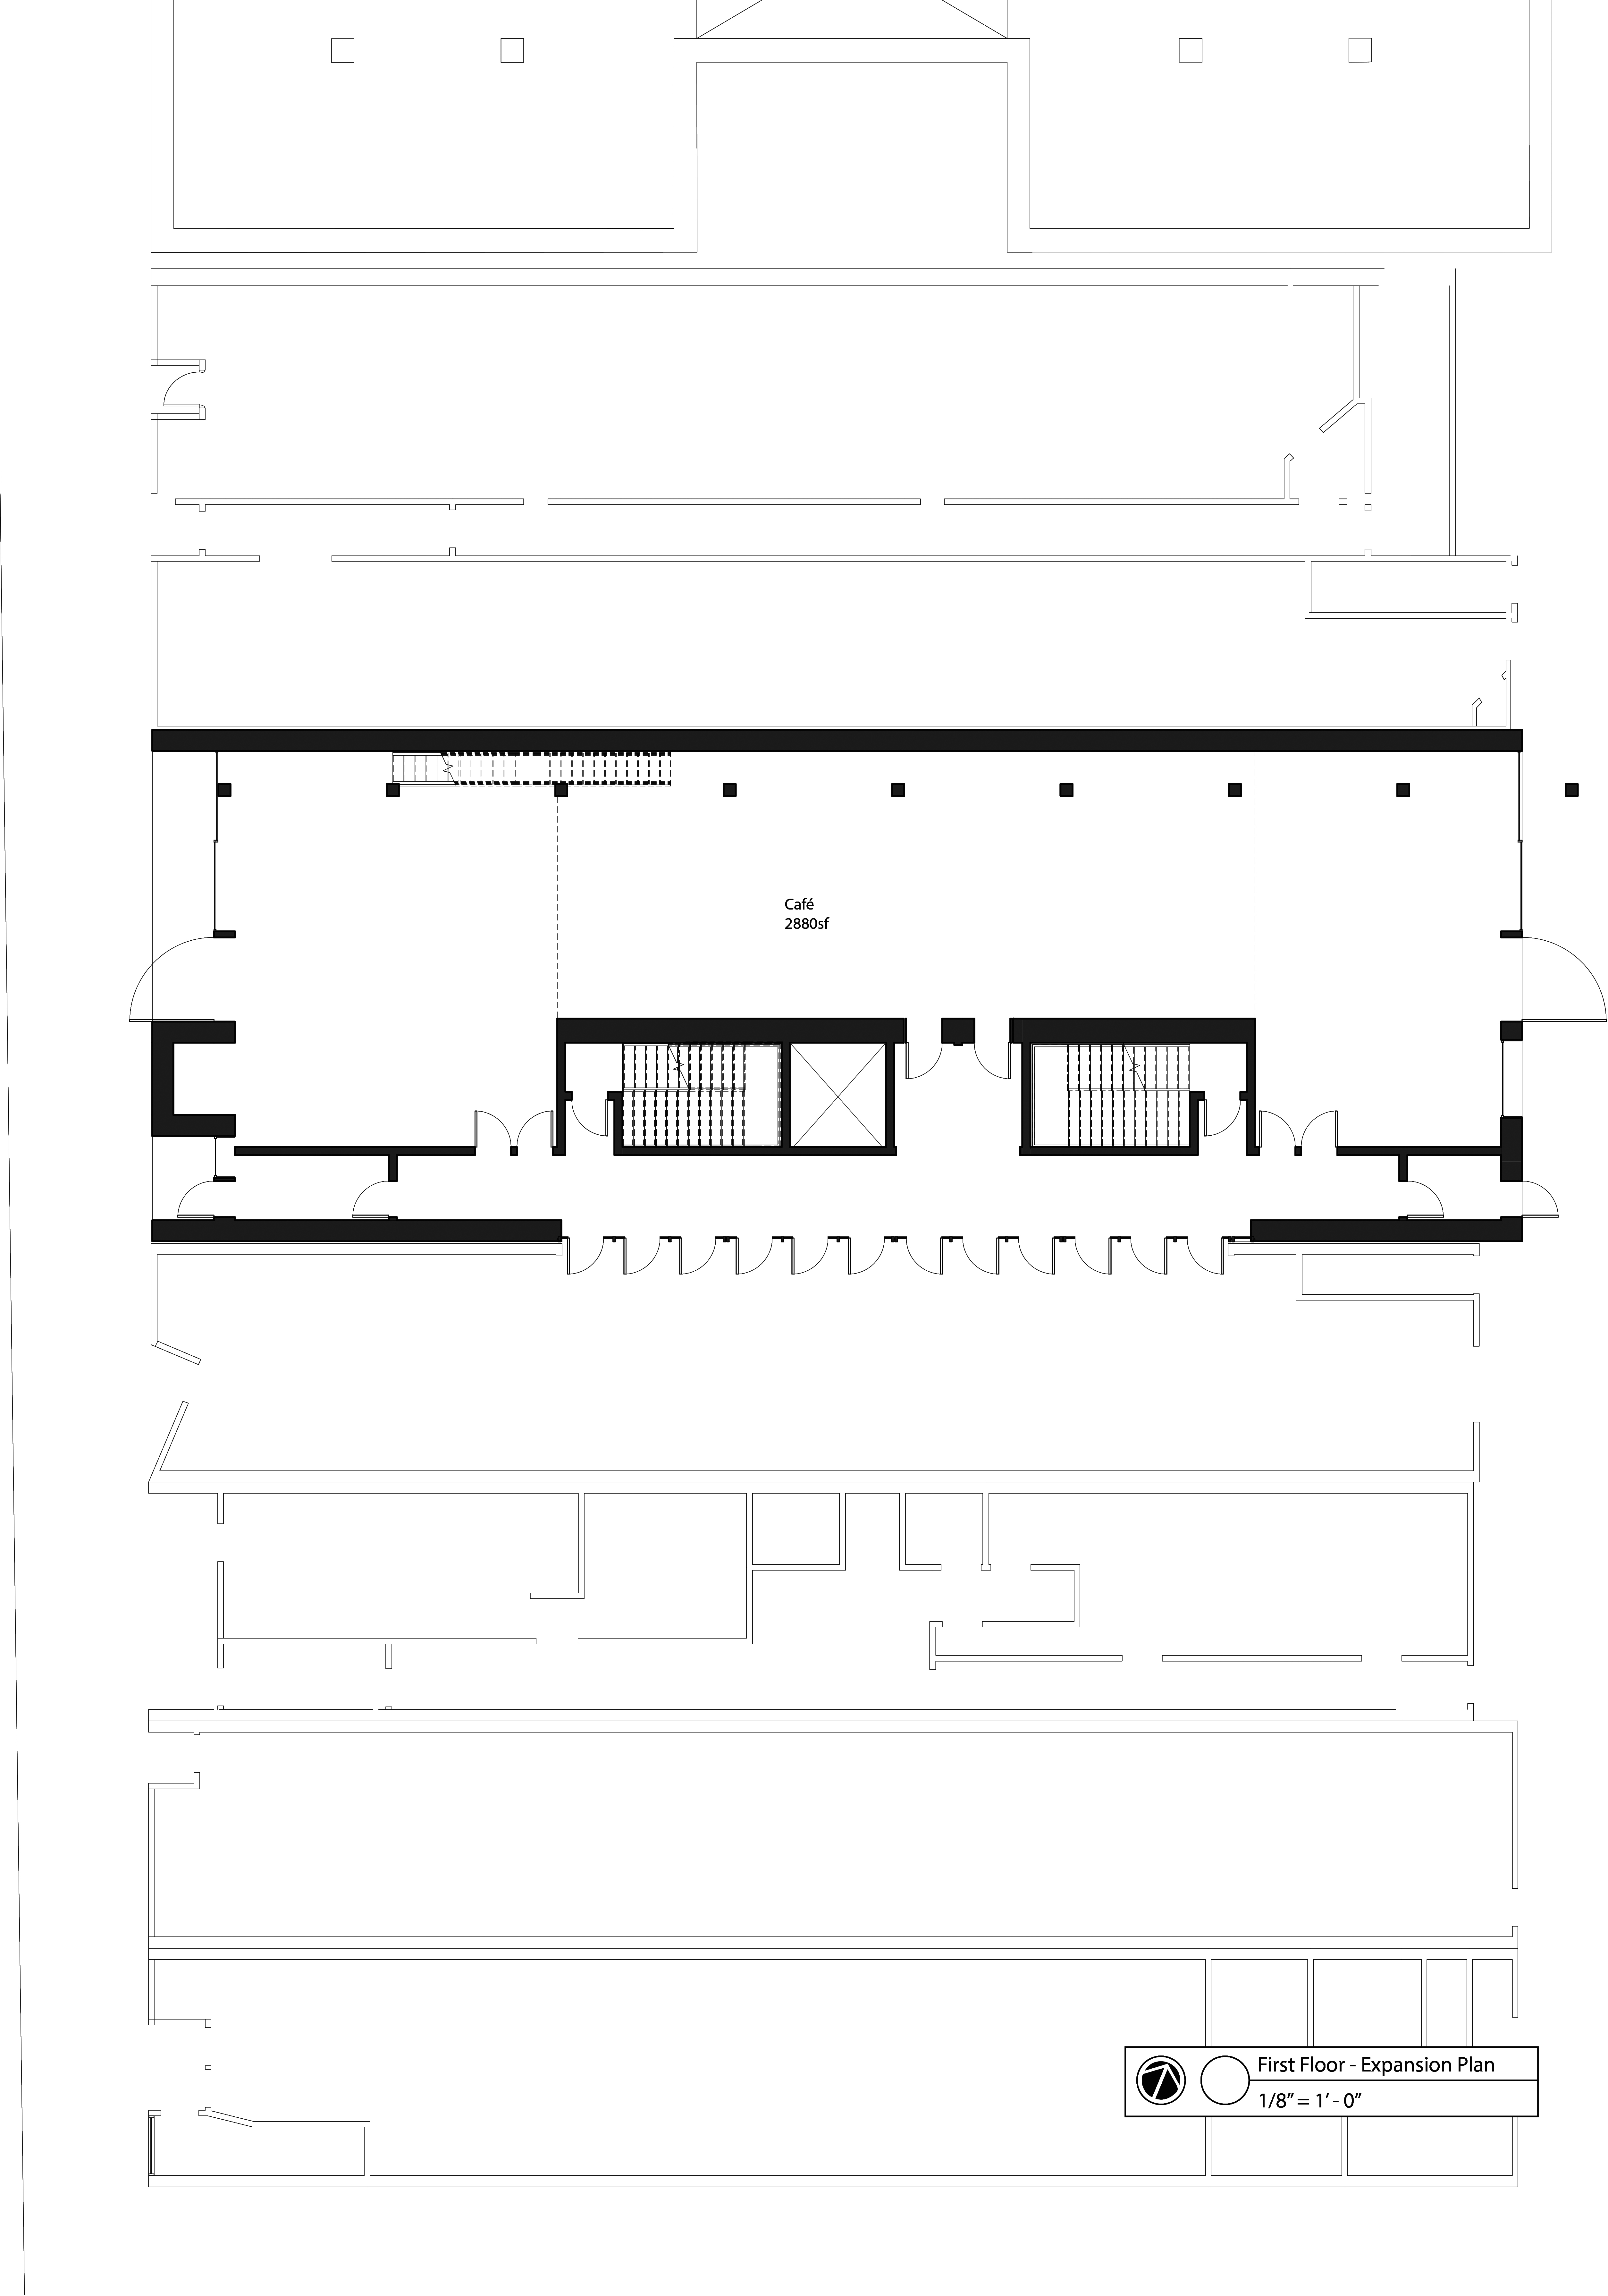 first floor - expansion plan